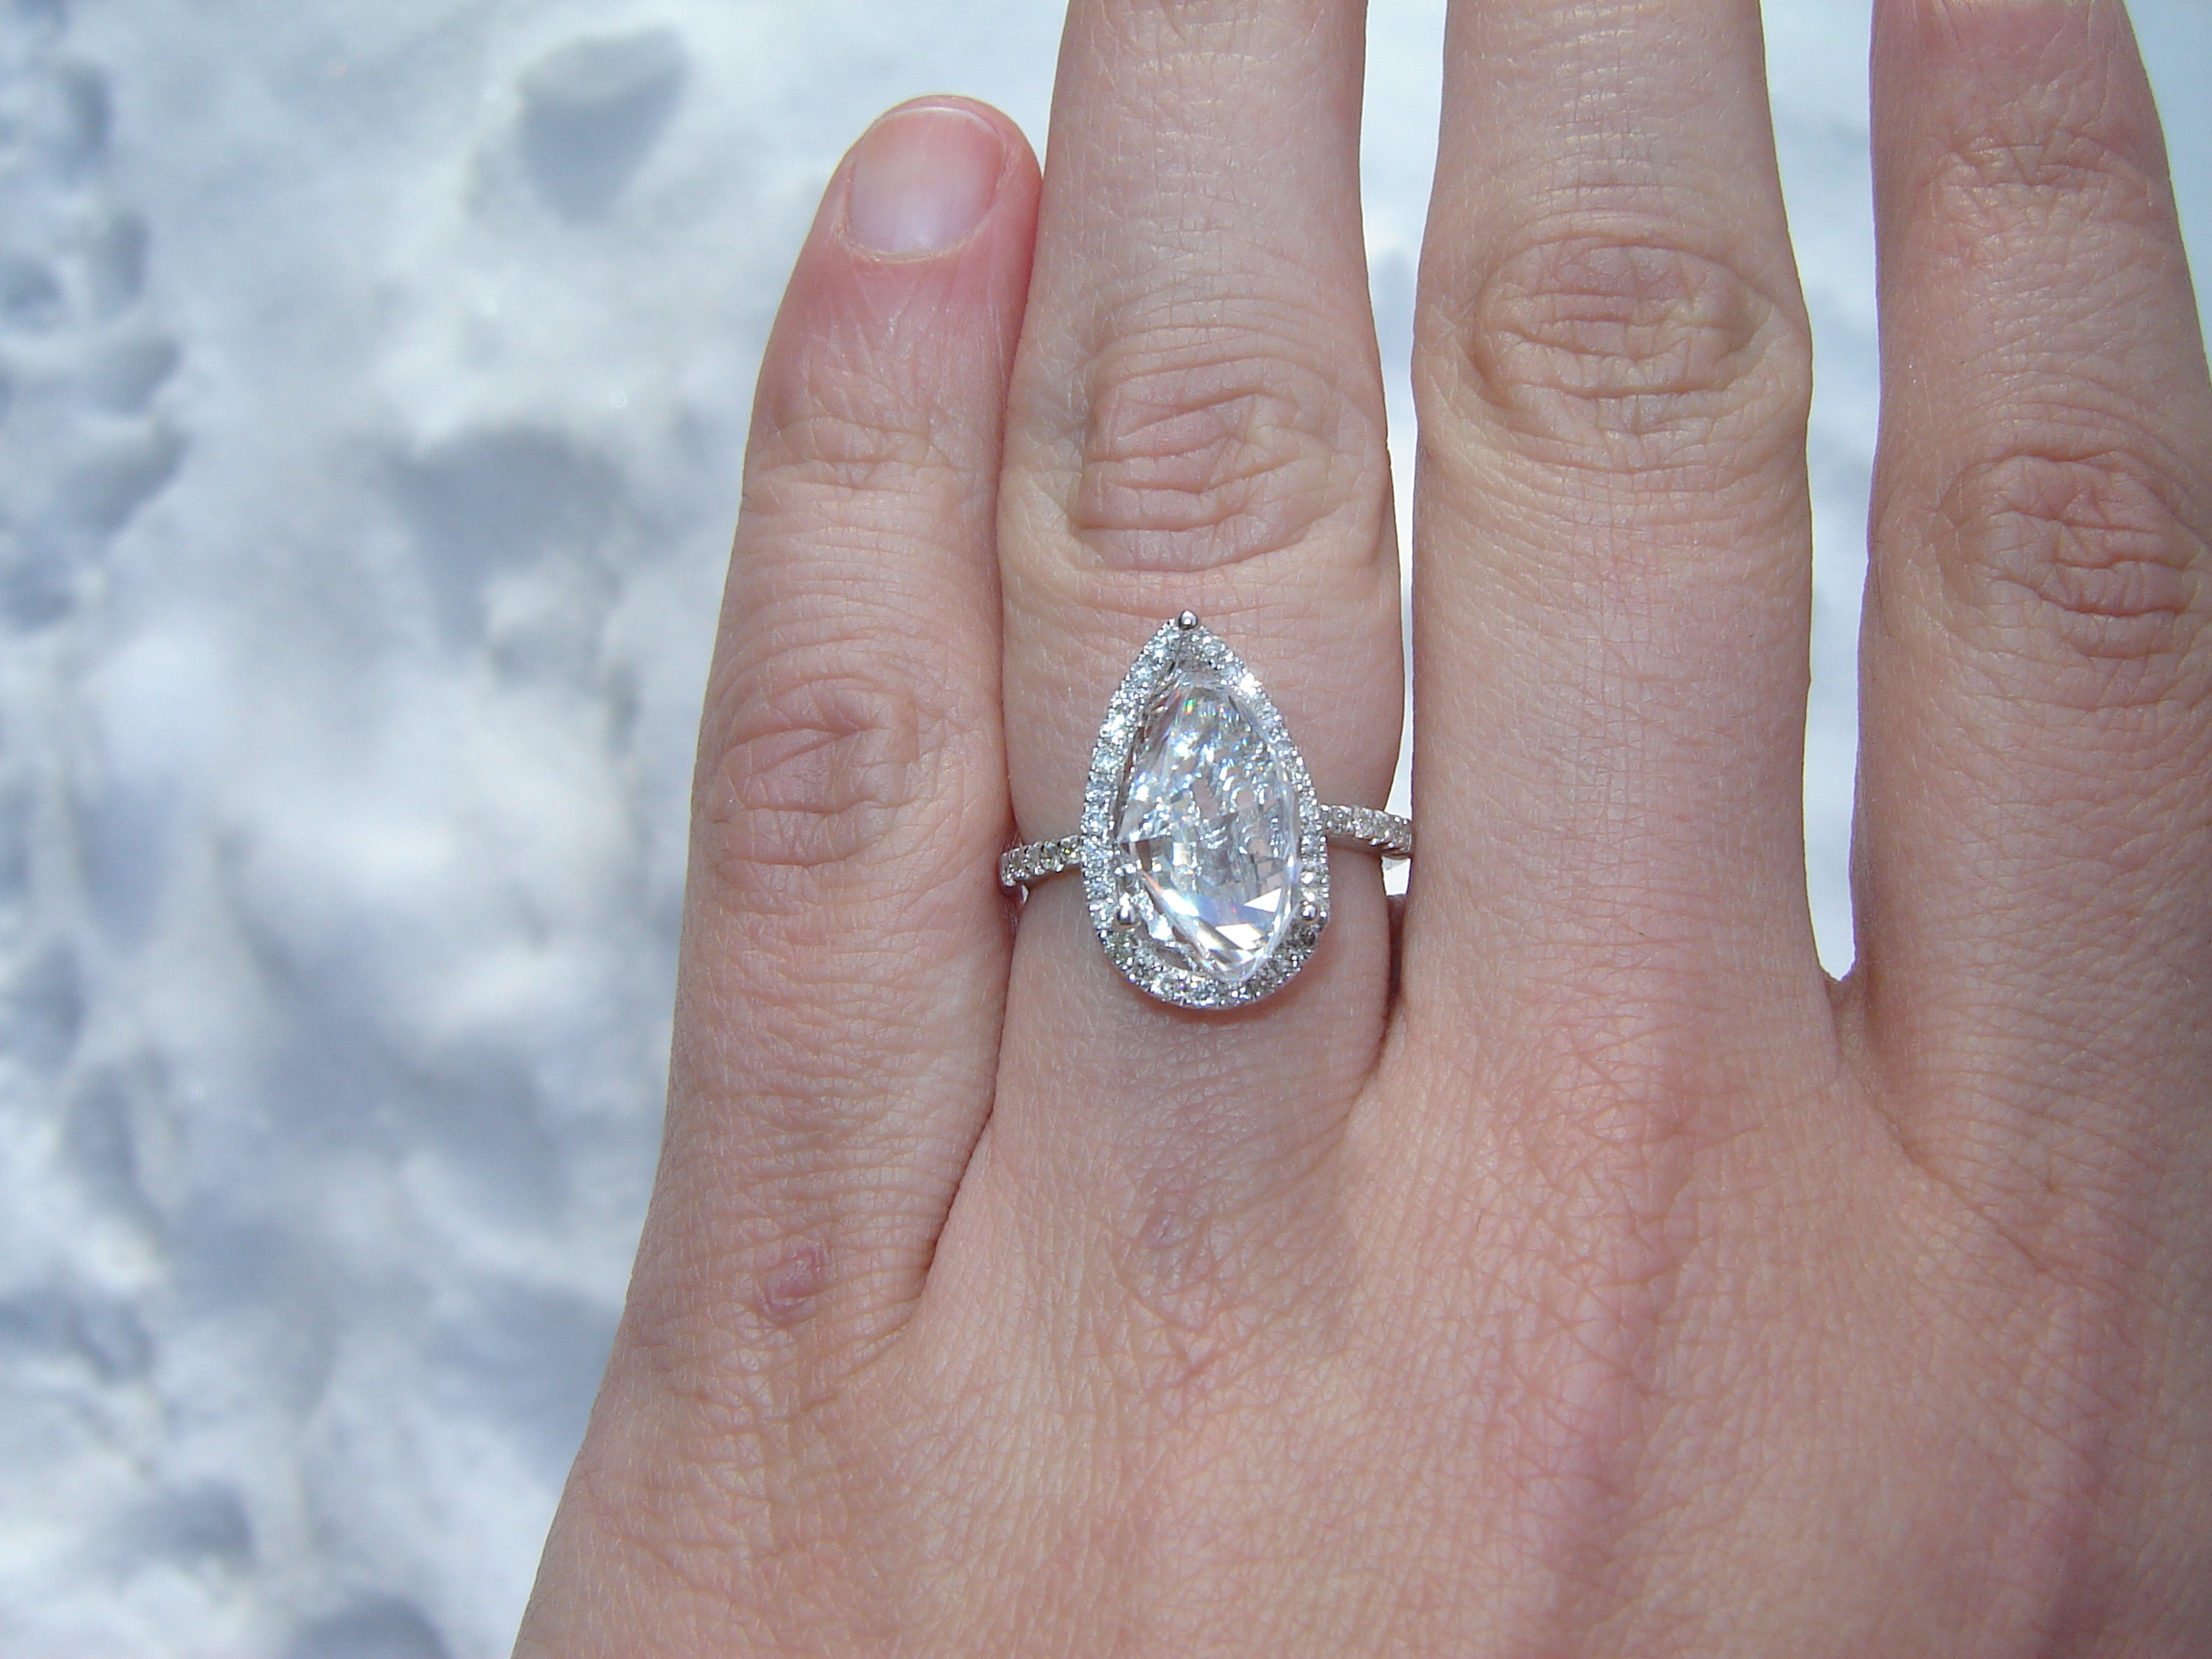 3 09 Carat Pear Shaped Diamond Engagement Wedding Ring With Pave Halo Center Stone 2 64ct 13 69 X 7 68 G H Color Si2 Clarity I Do Now I Don T